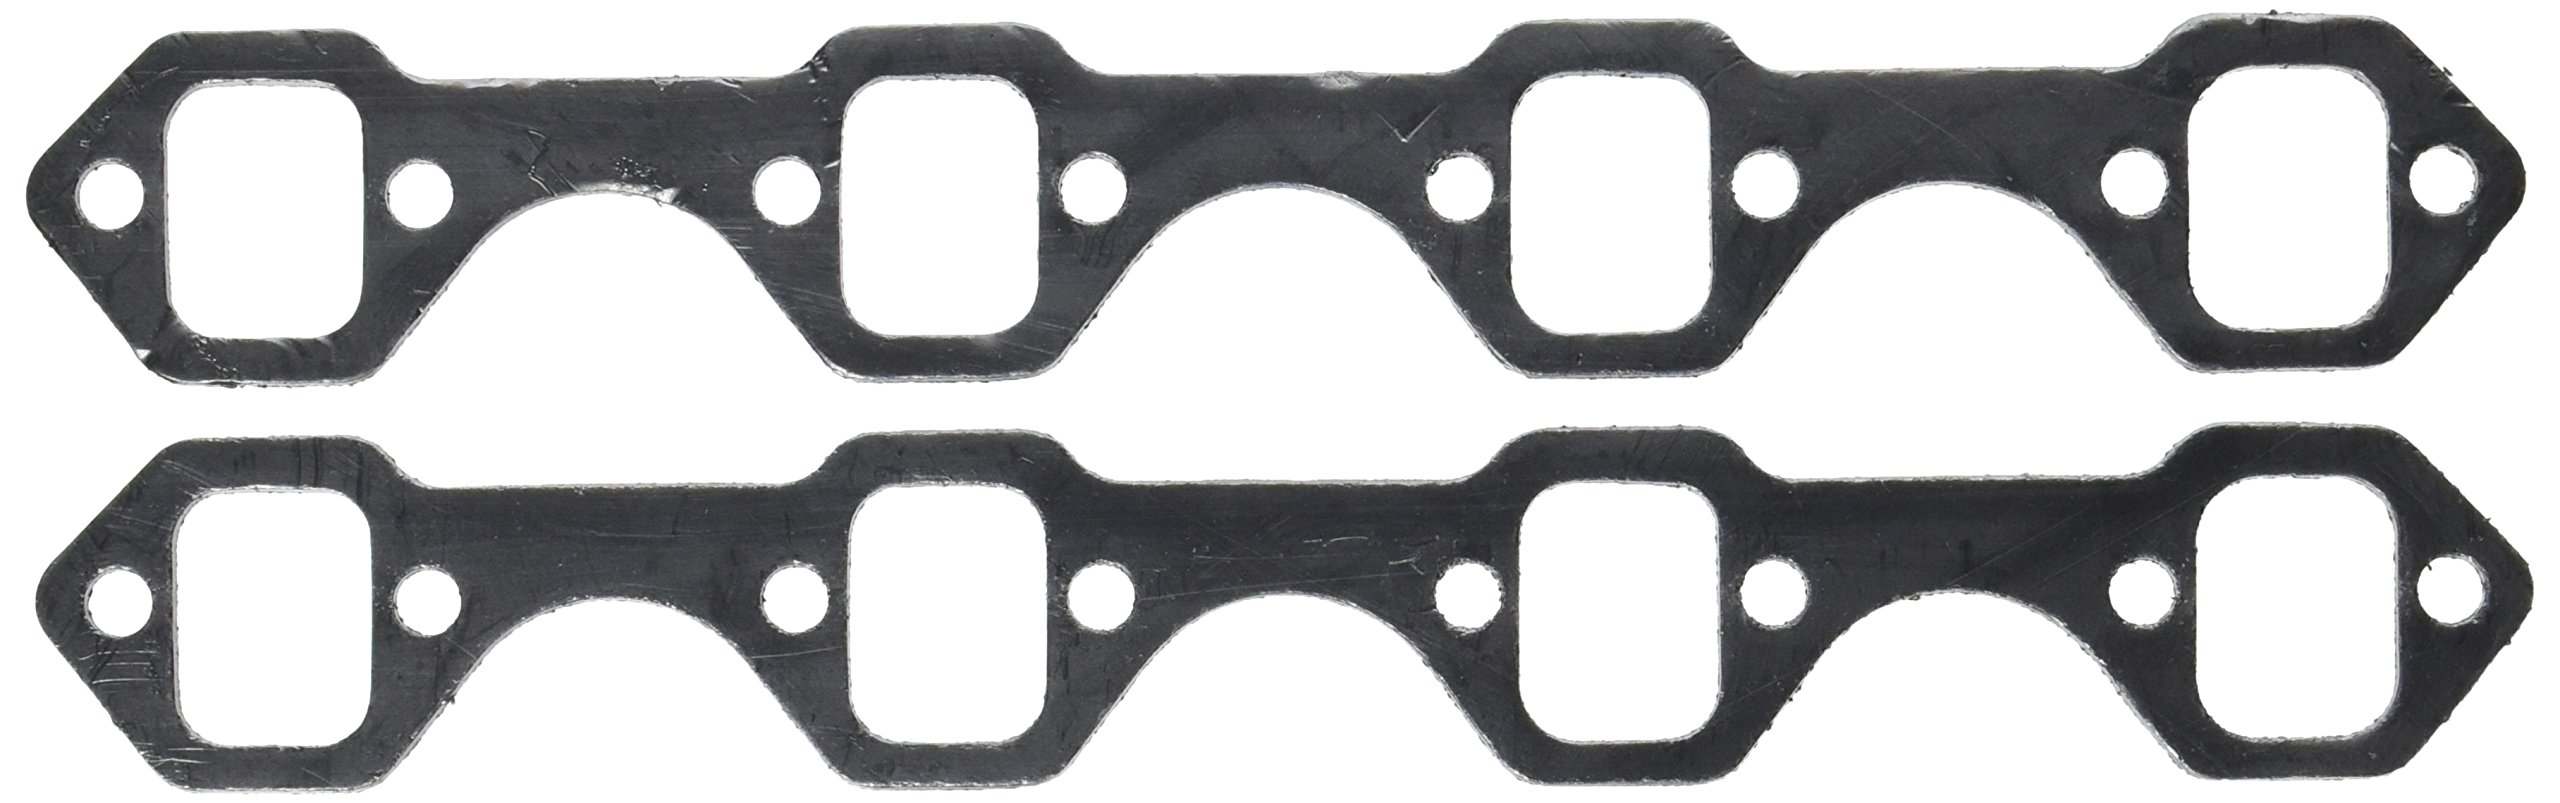 Remflex 3028 Exhaust Gasket for Ford V8 Engine, (Set of 2)